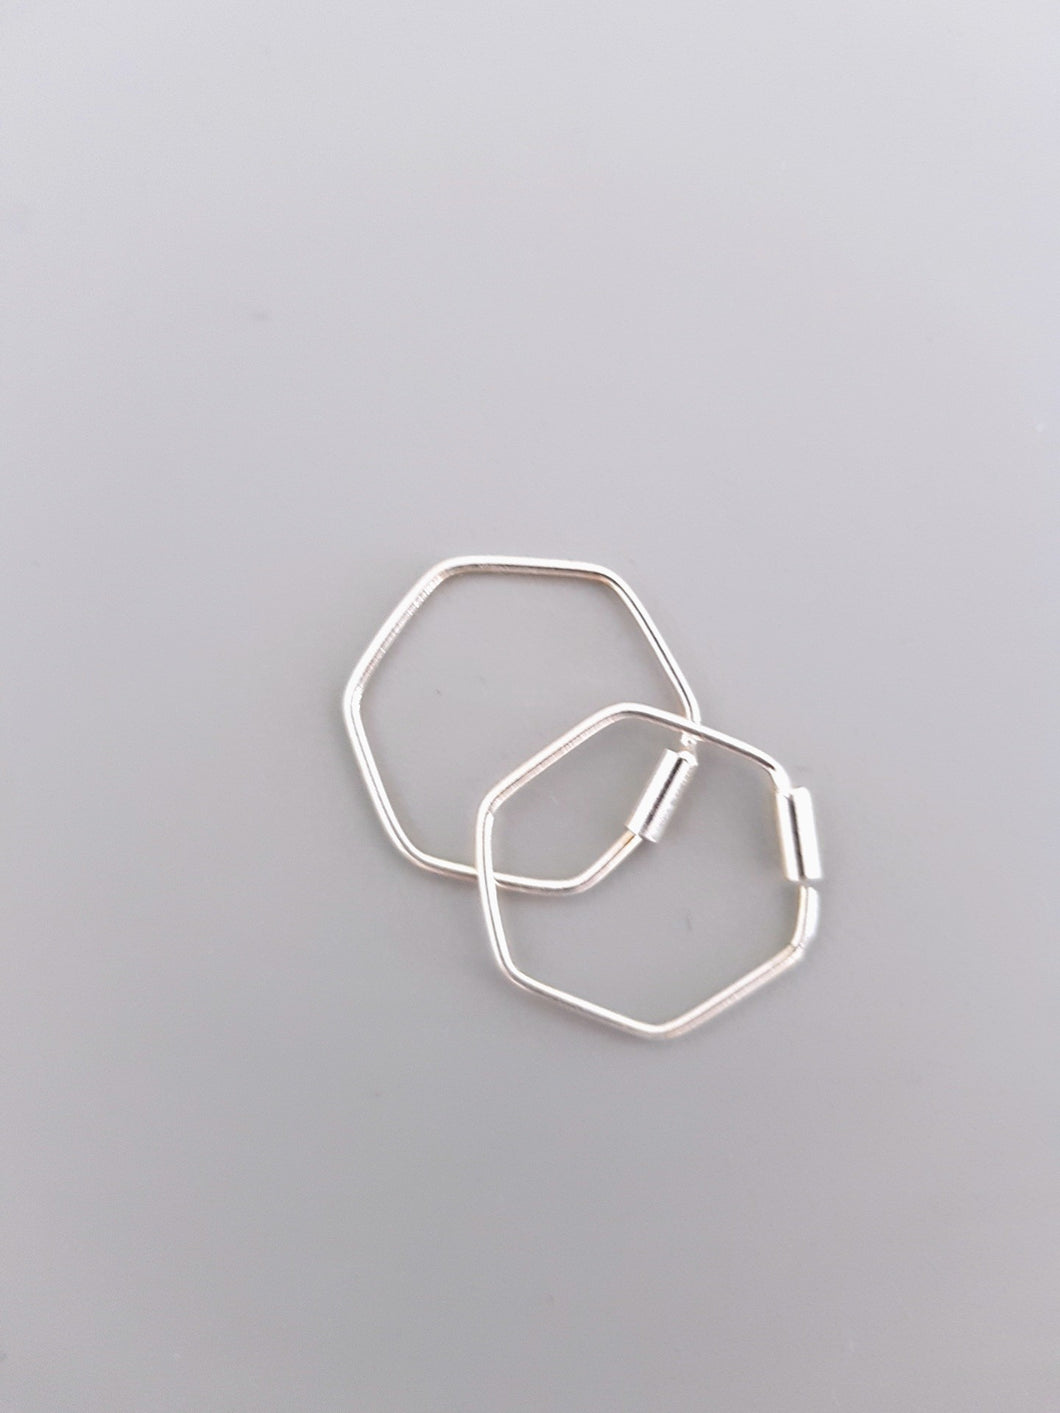 Hexagonal silver sleeper earrings